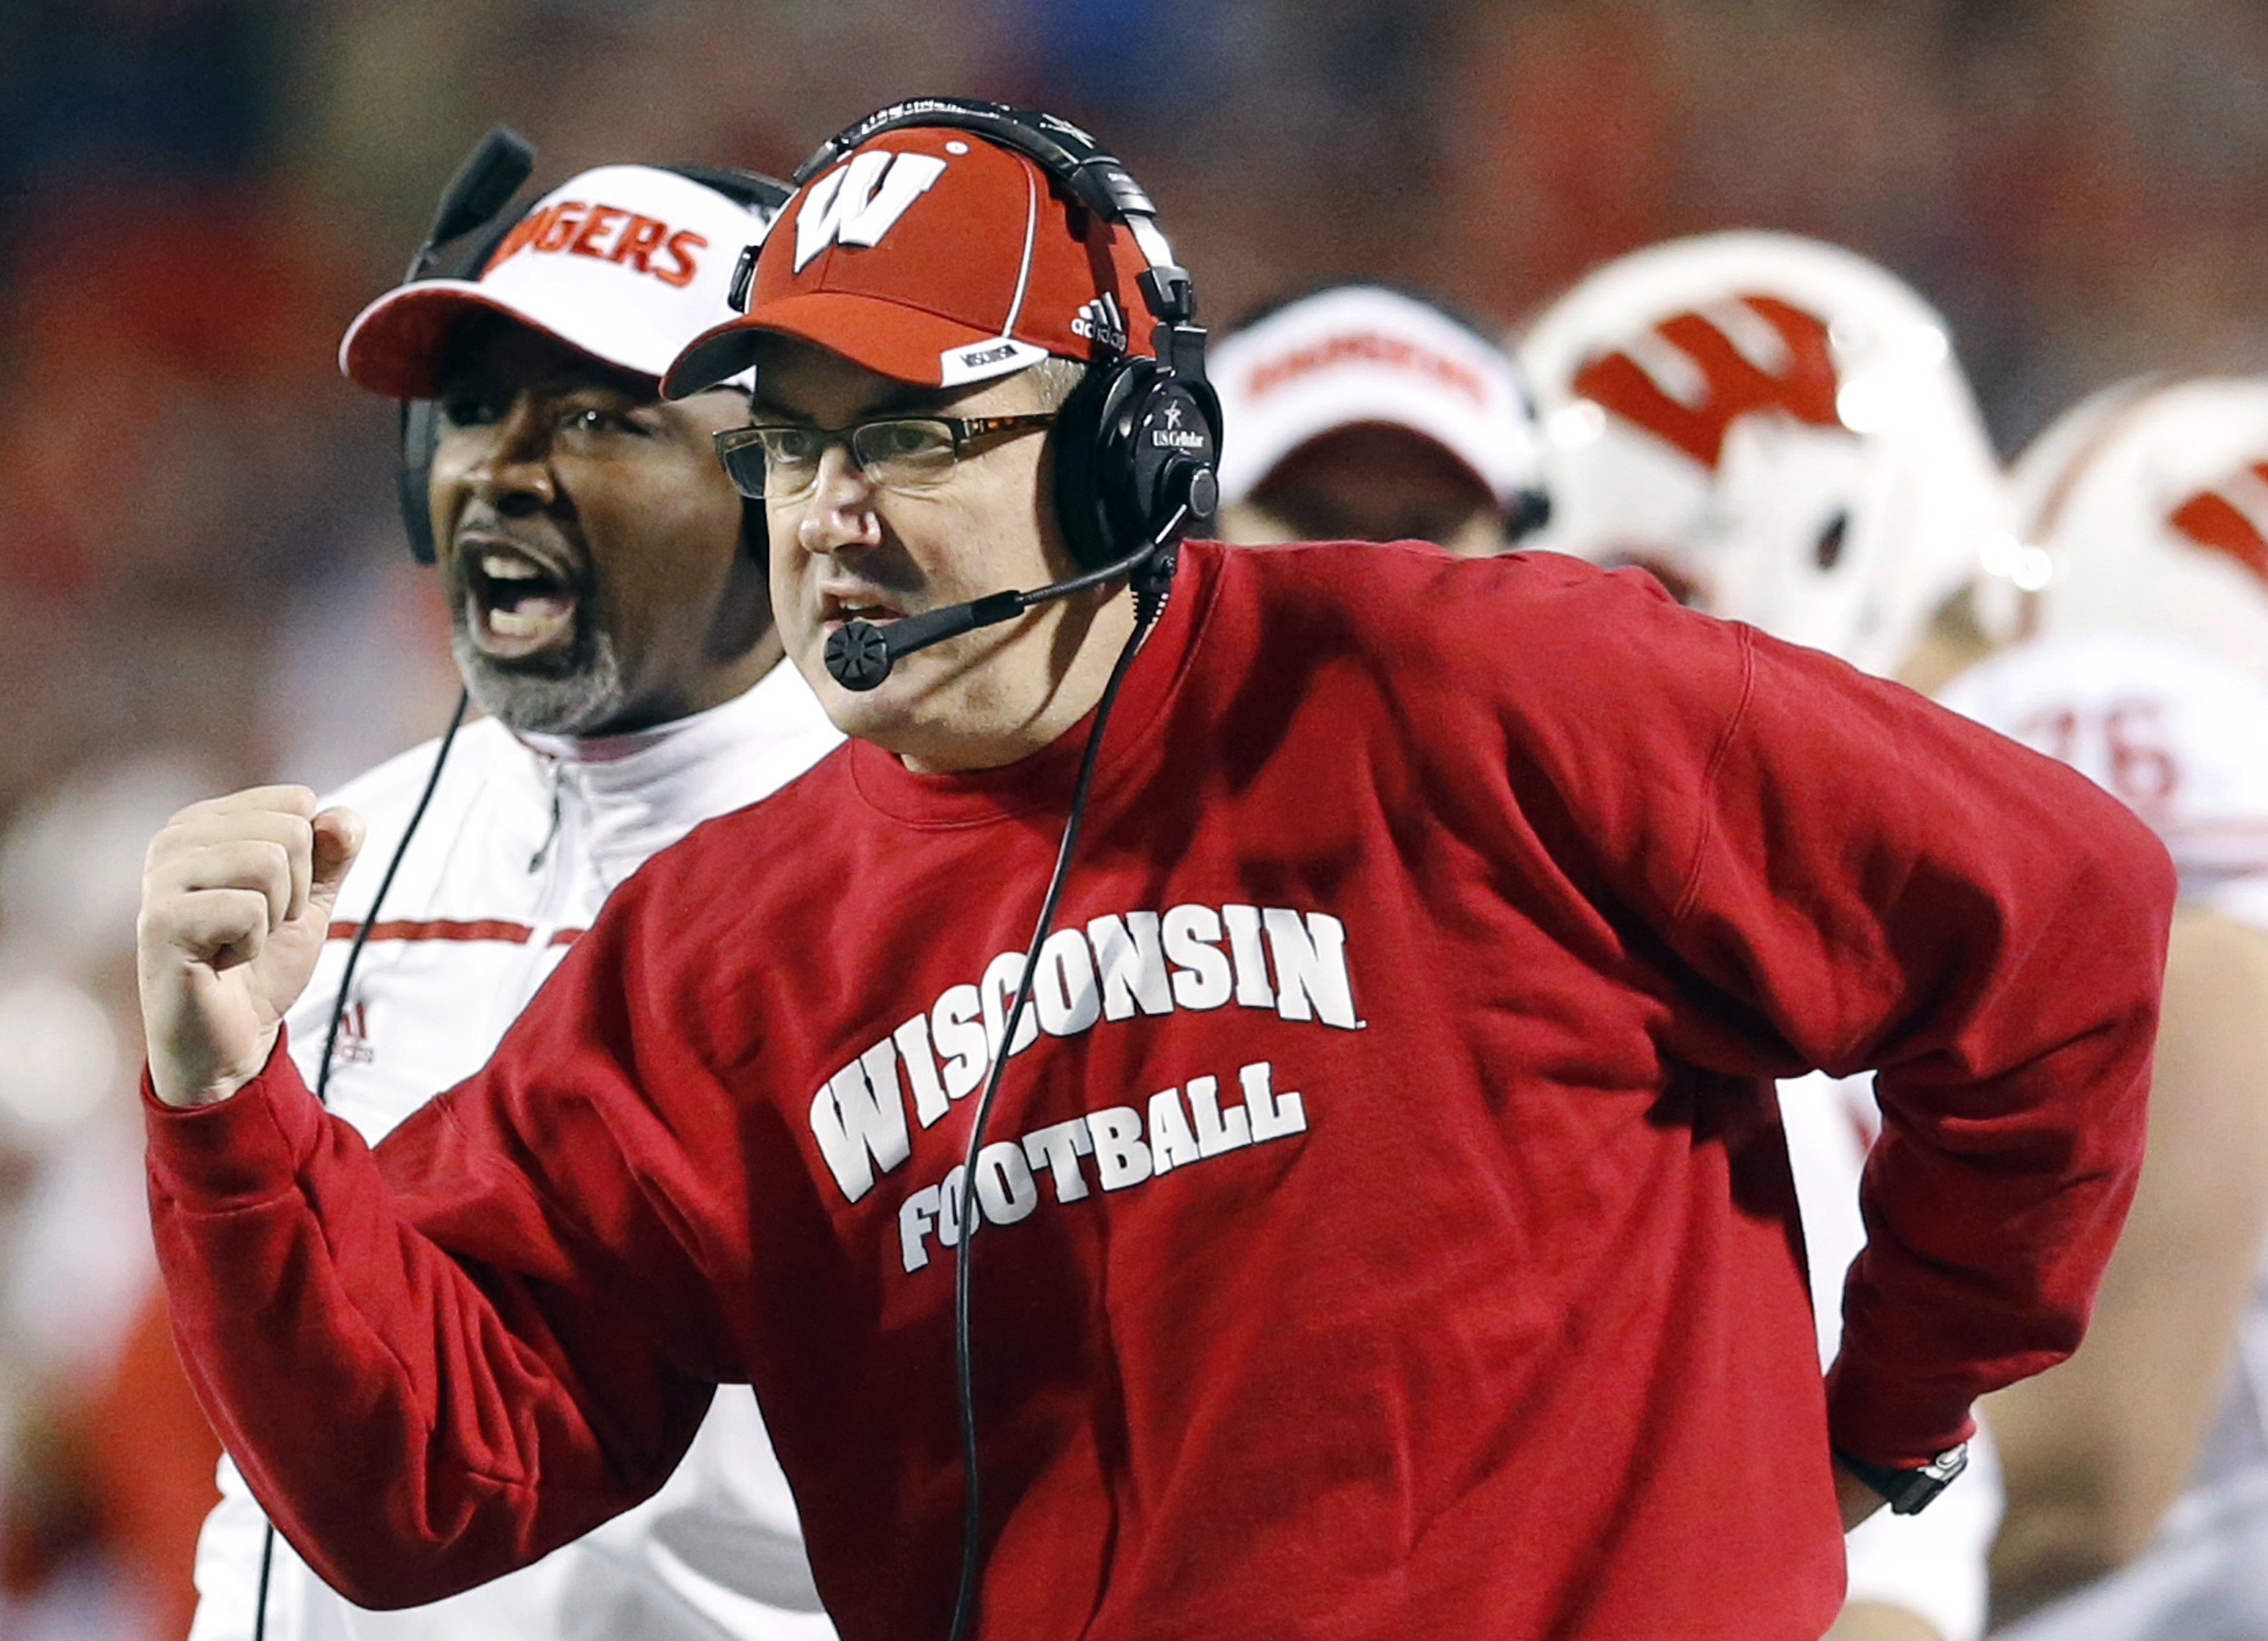 FILE - In this Nov. 7, 2015, file photo, Wisconsin head coach Paul Chryst, foreground, reacts after running back Alec Ingold scored a touchdown in the second half of an NCAA college football game against Maryland. Wisconsin has to play national powers LSU